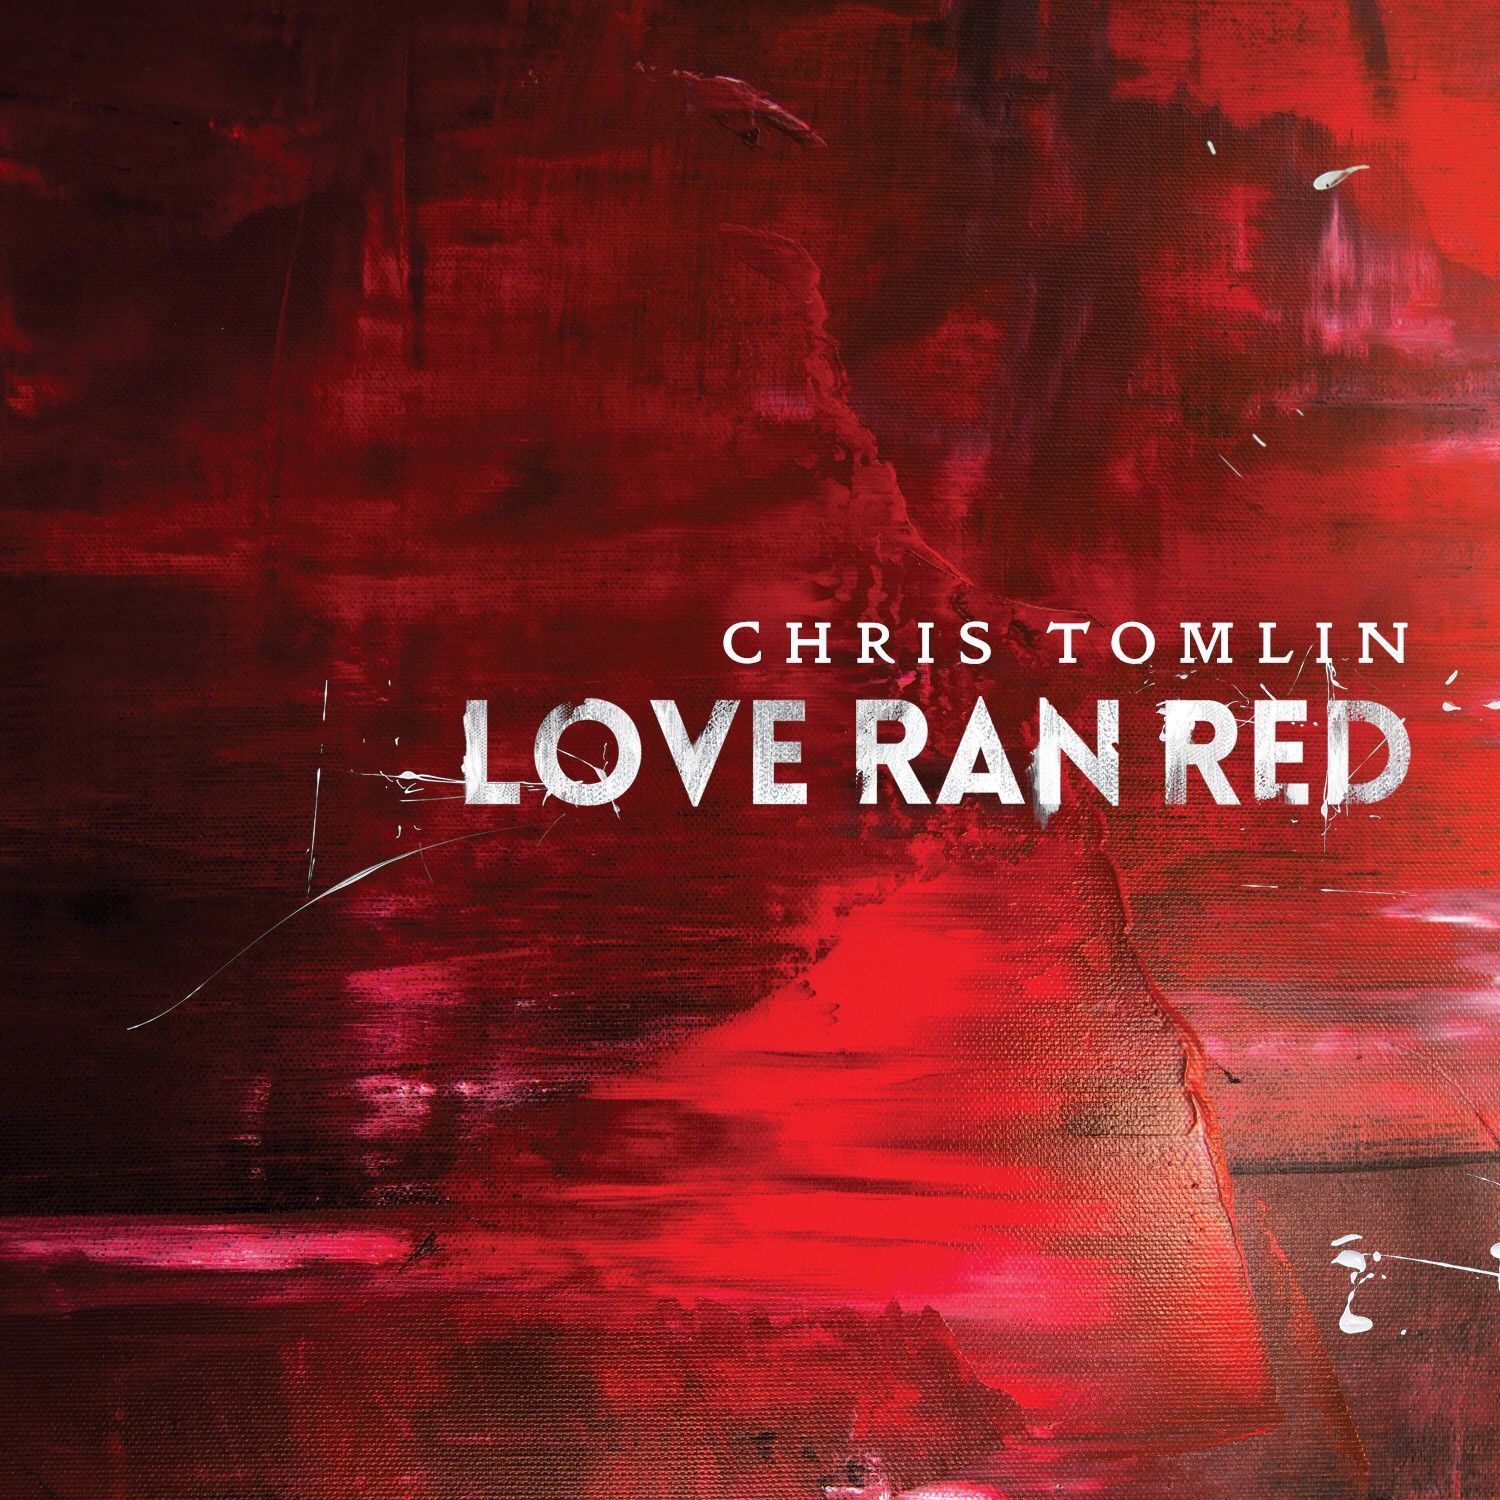 I'm listening to Waterfall by Chris Tomlin in my